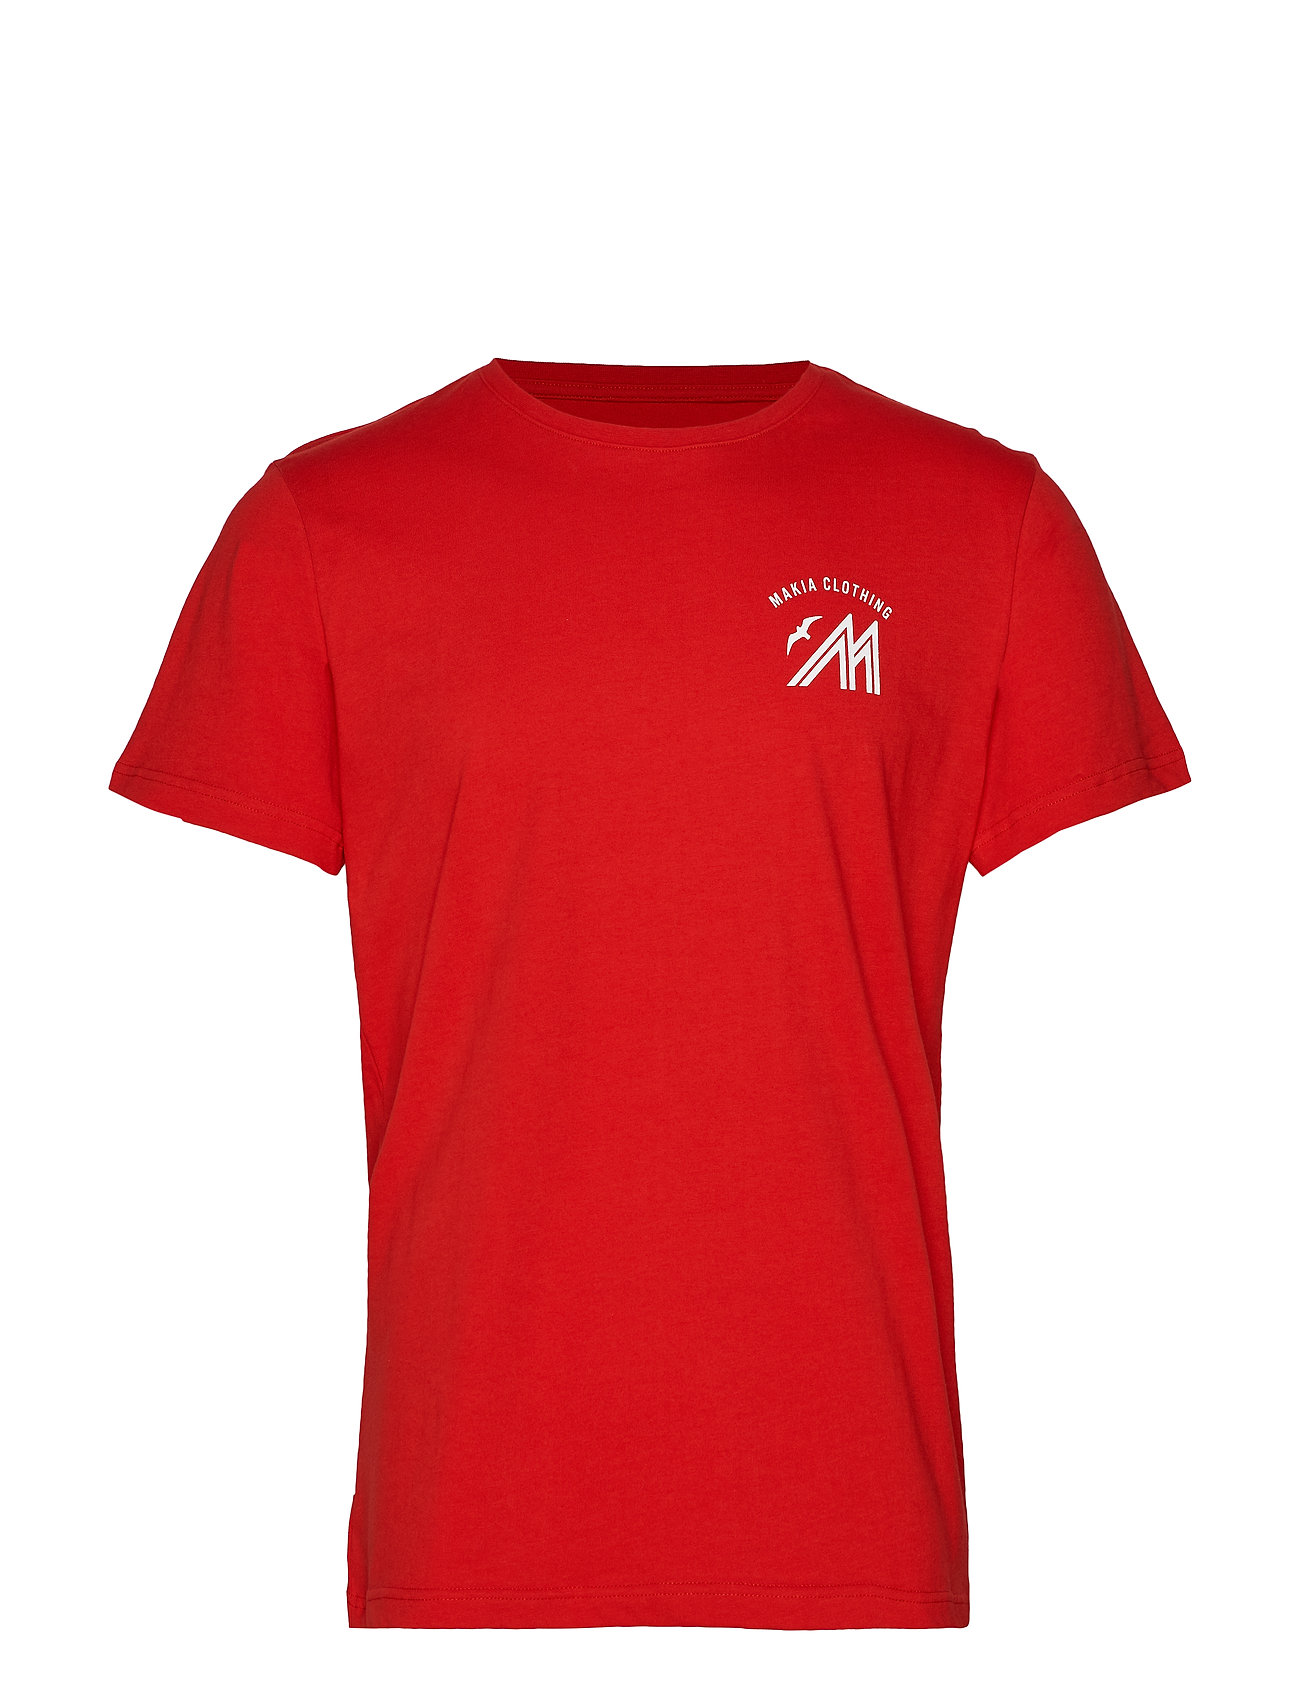 Makia Station T-Shirt - RED